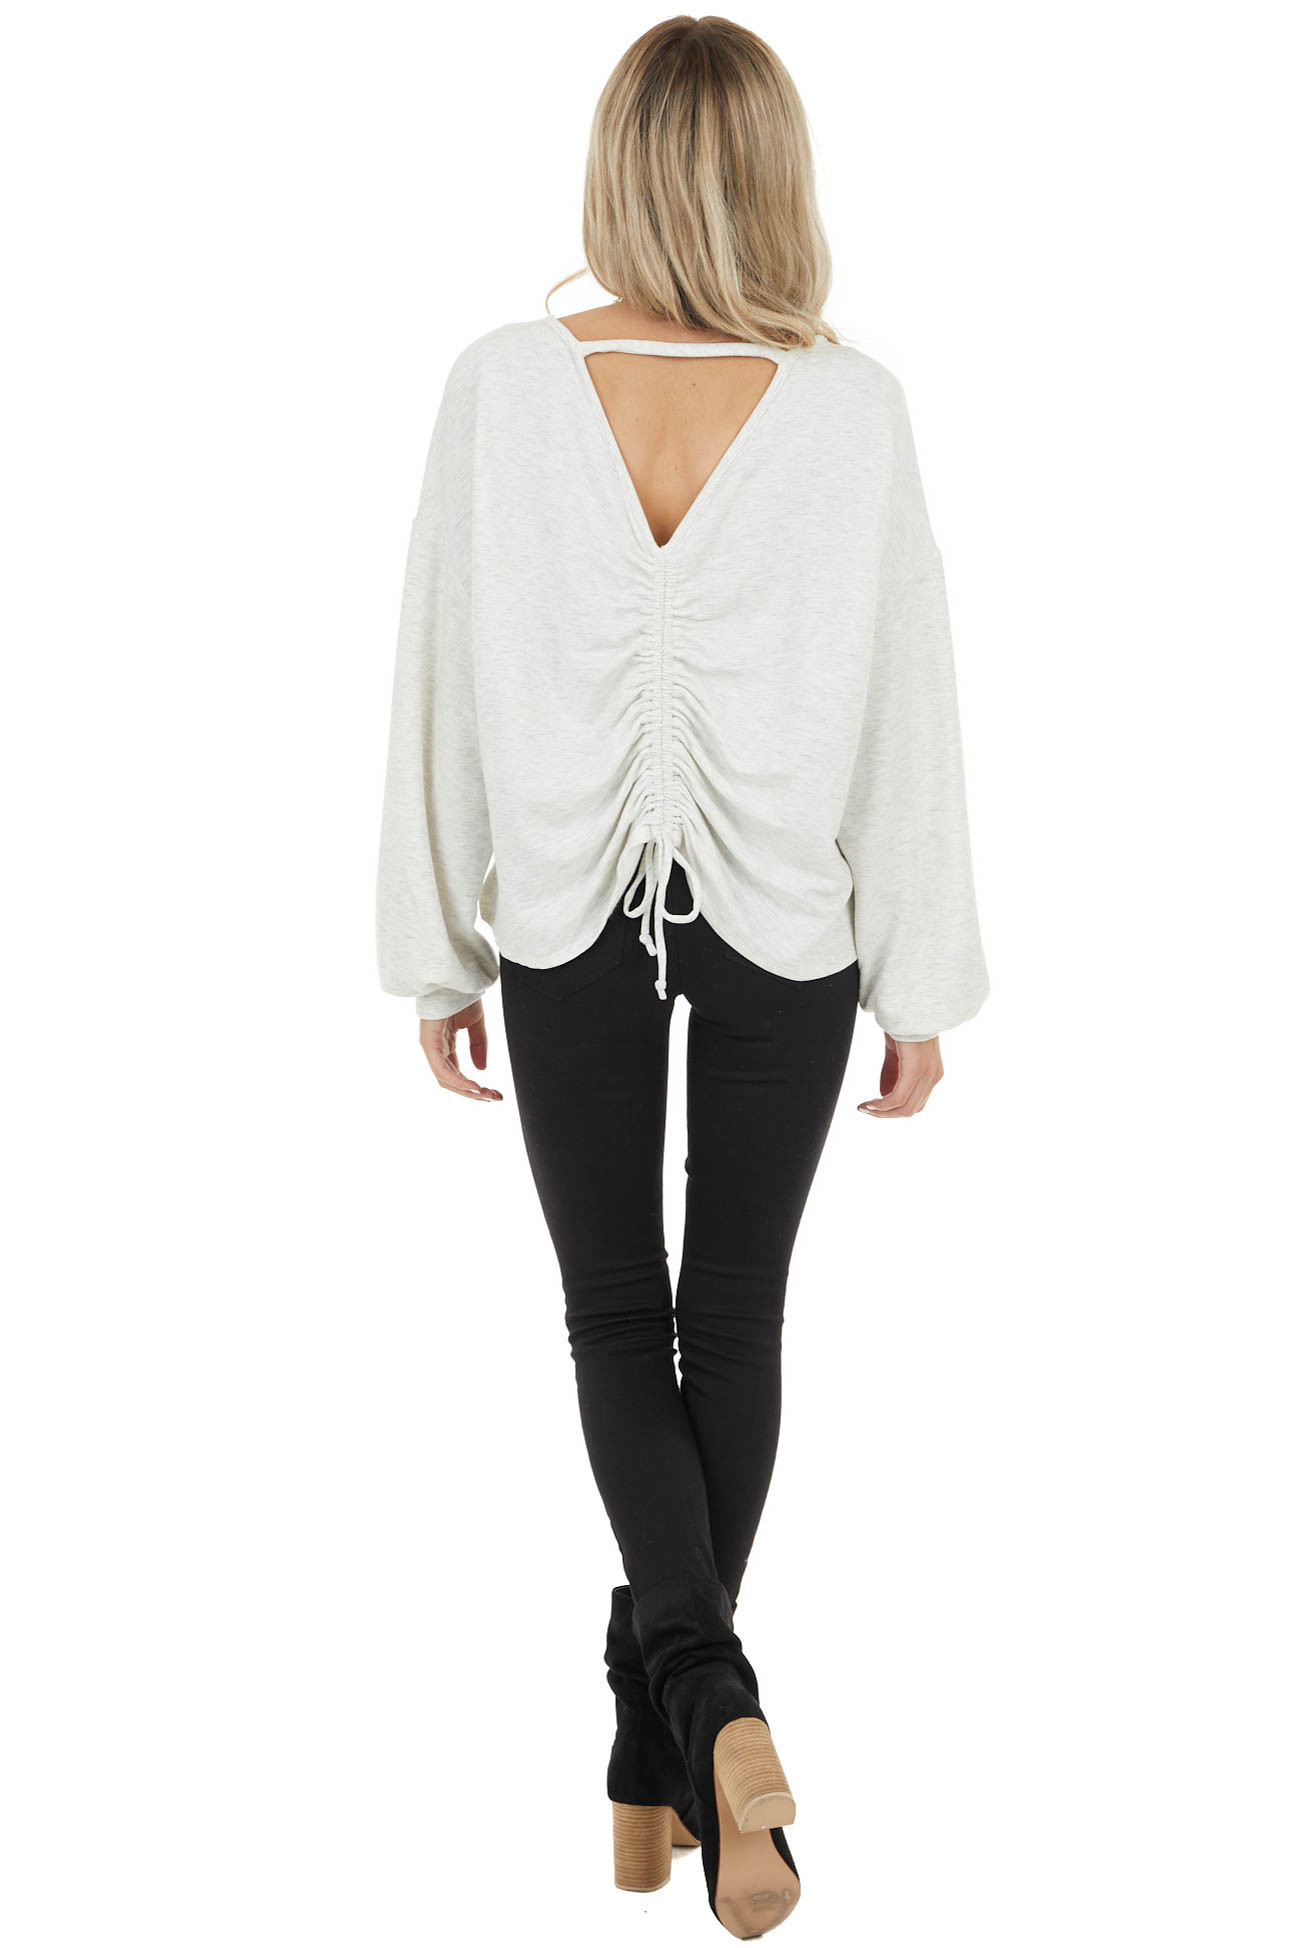 Ivory Long Sleeve Knit Top with Drawstring Back Detail